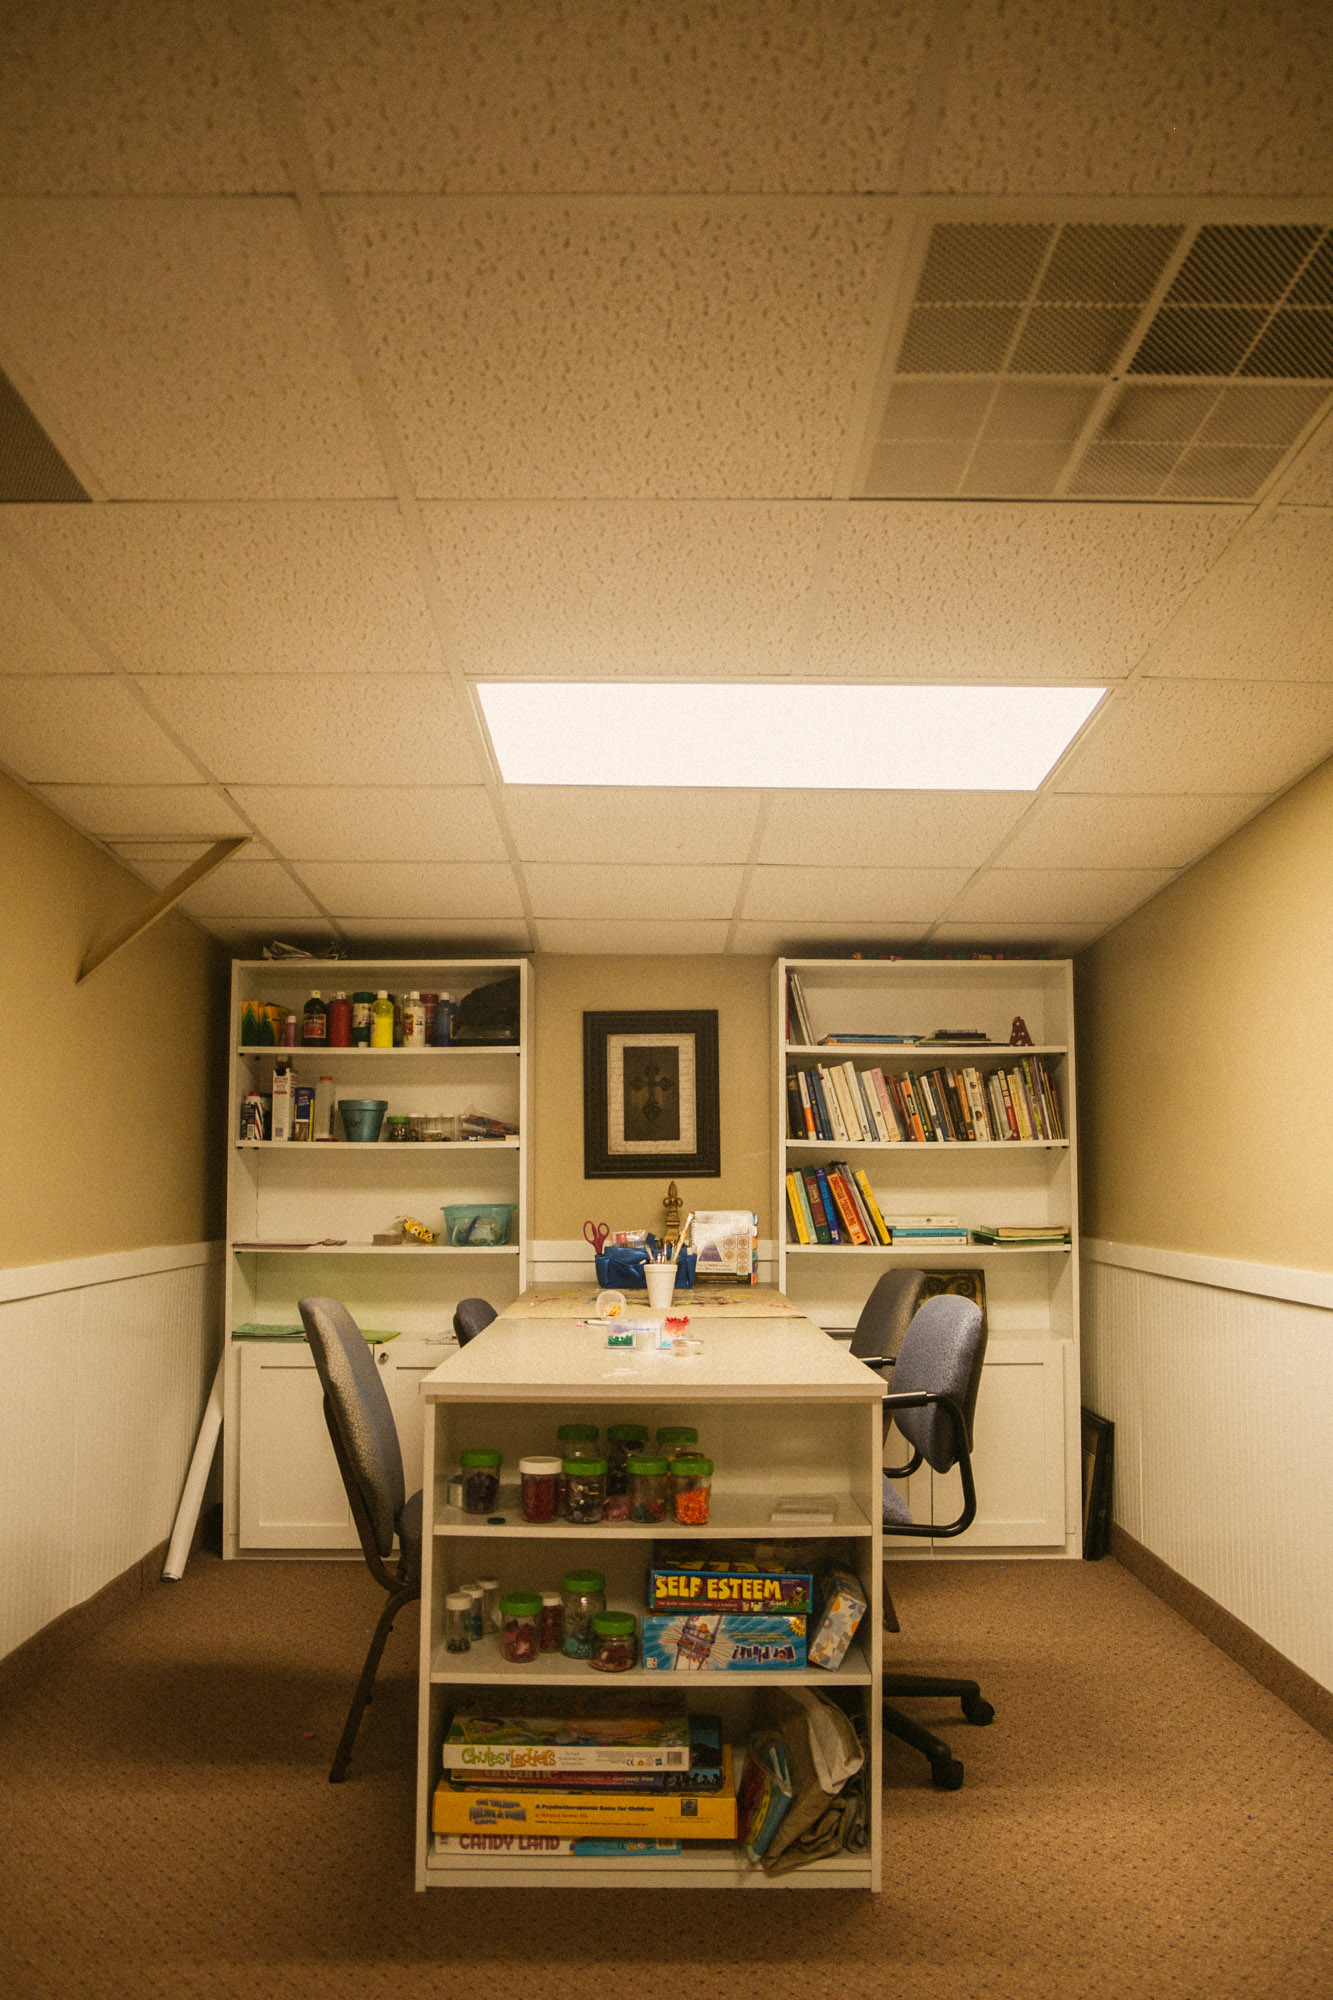 An empty play therapy room with assorted craft items on the table